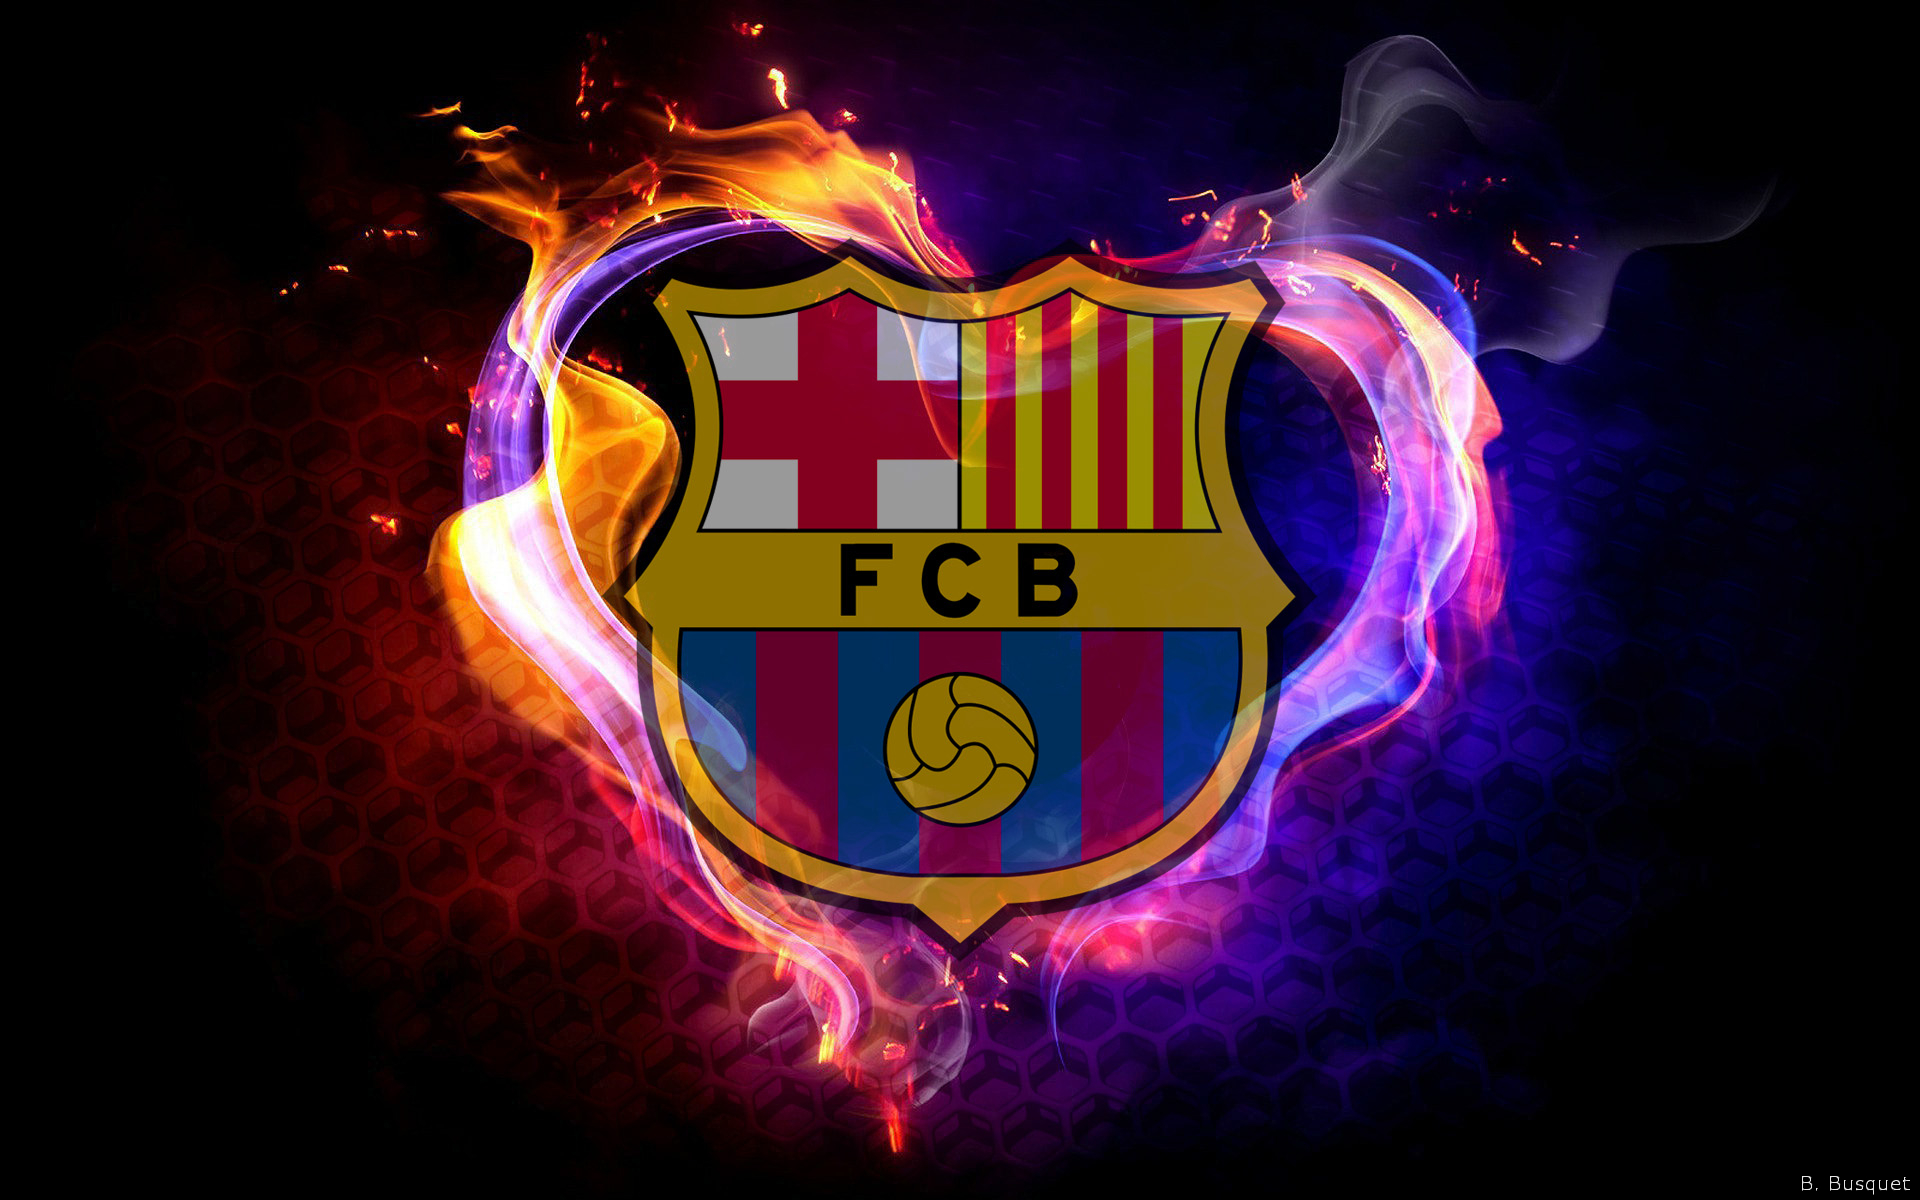 Barcelona-Football-Club-Football-HD-1920%C3%971080-Fc-Barcelona-Wallp-wallpaper-wpc9202754